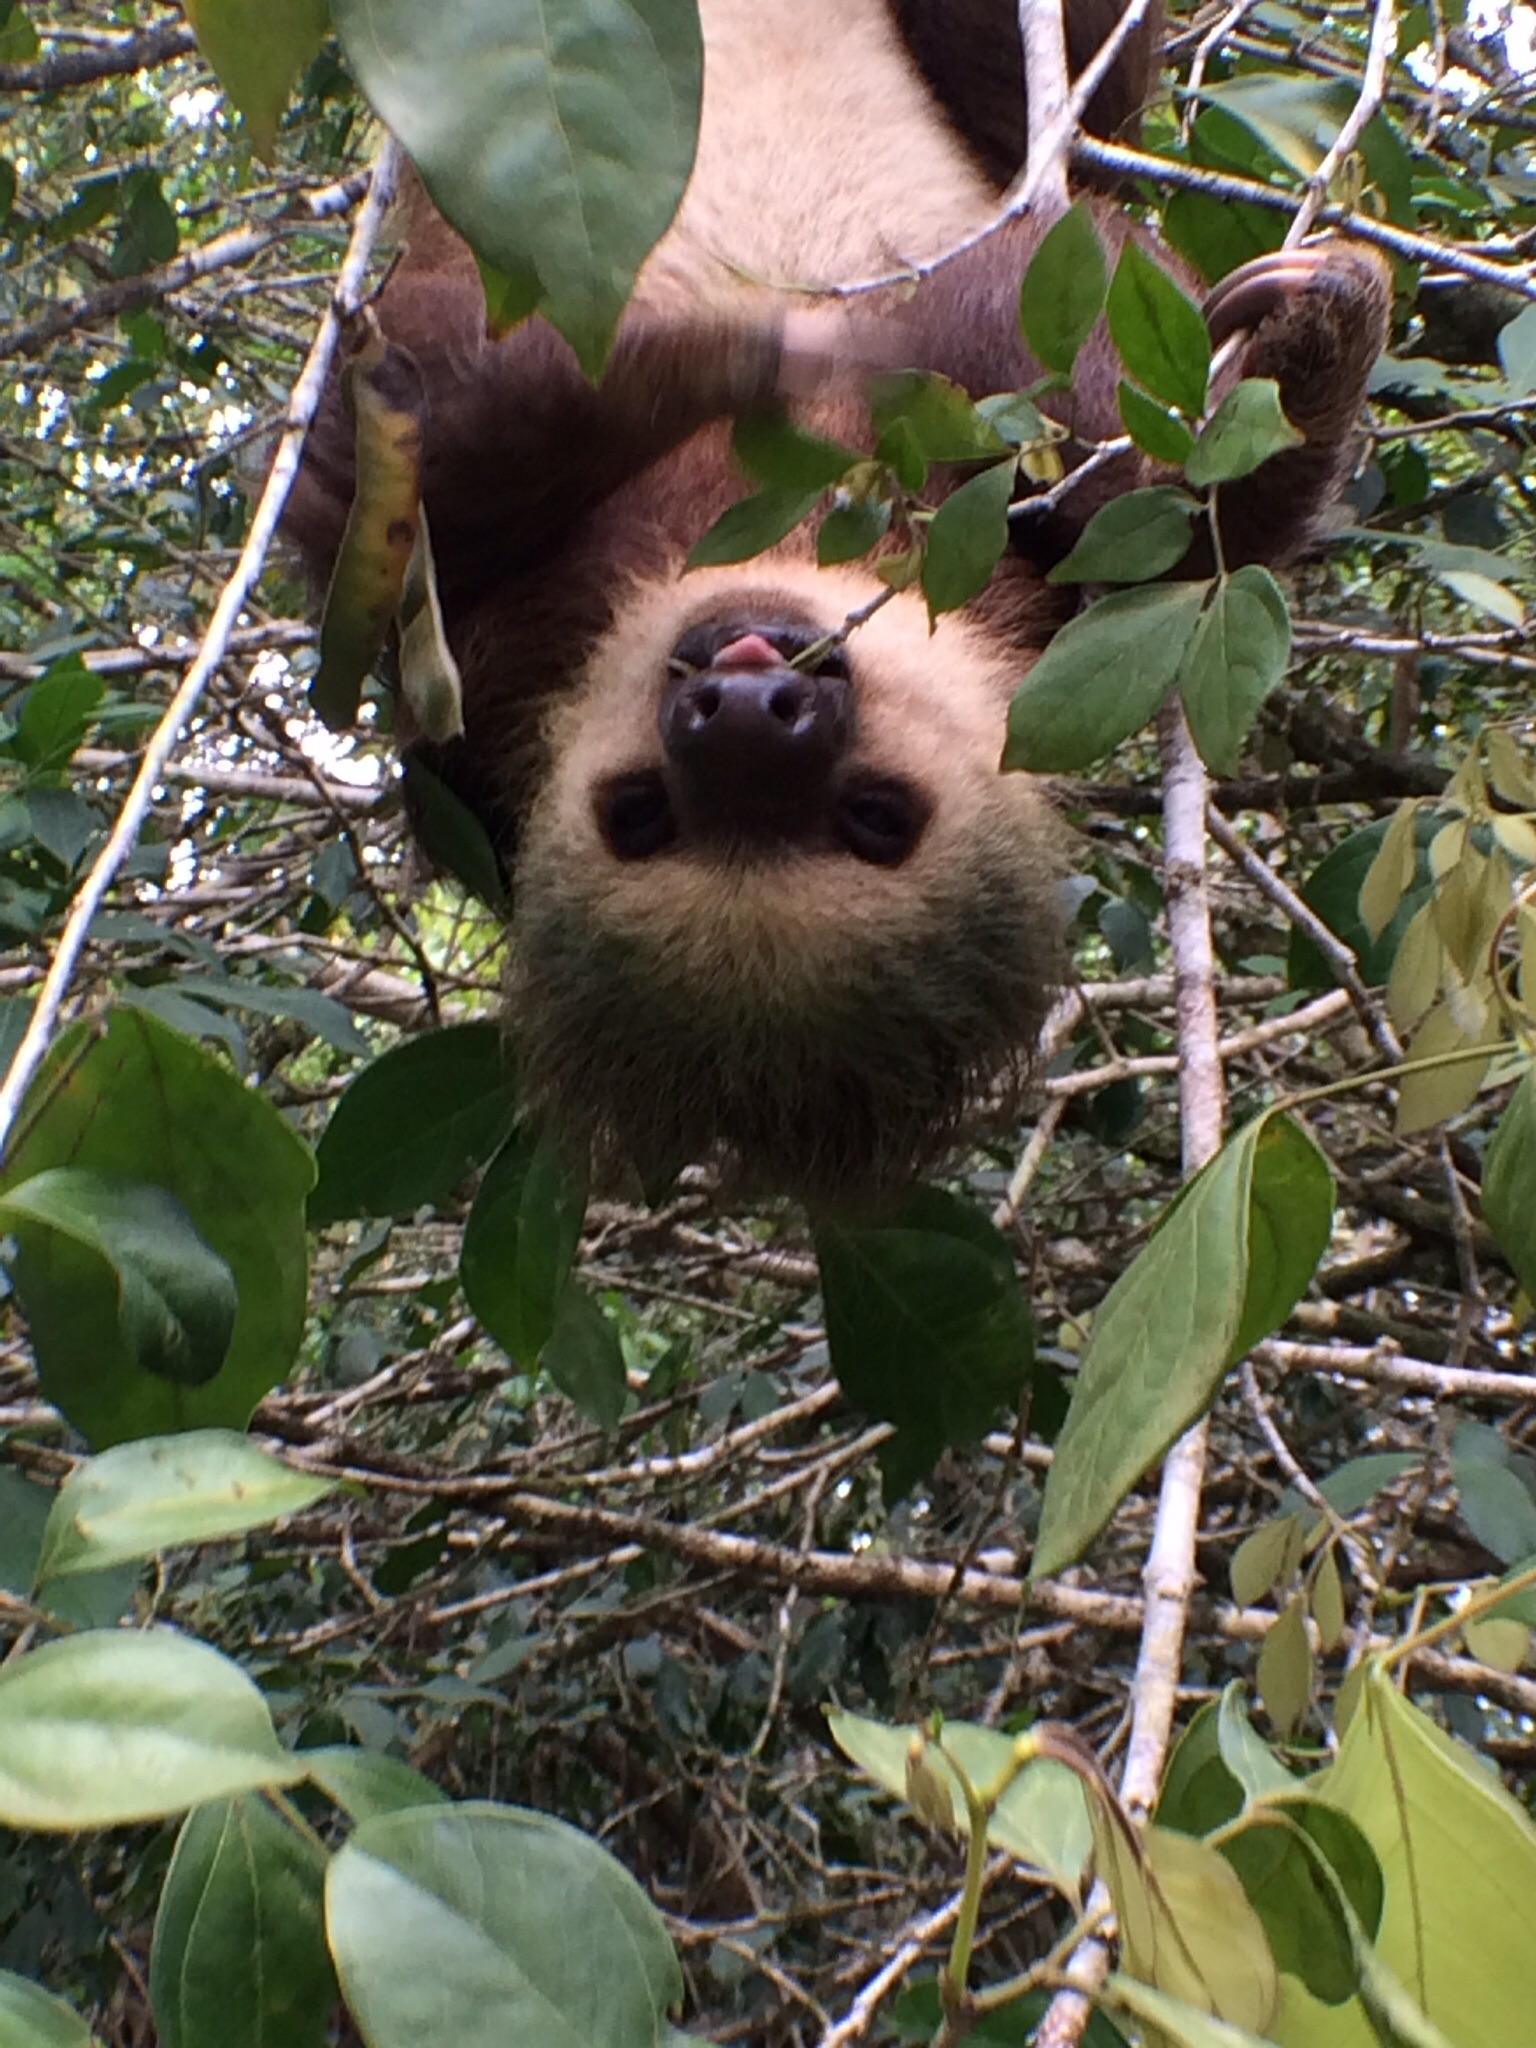 Choloepus didactylus is the scientific name for this two-toed sloth. They are even cuter in person. If you can believe that. (Seriously. They are.)